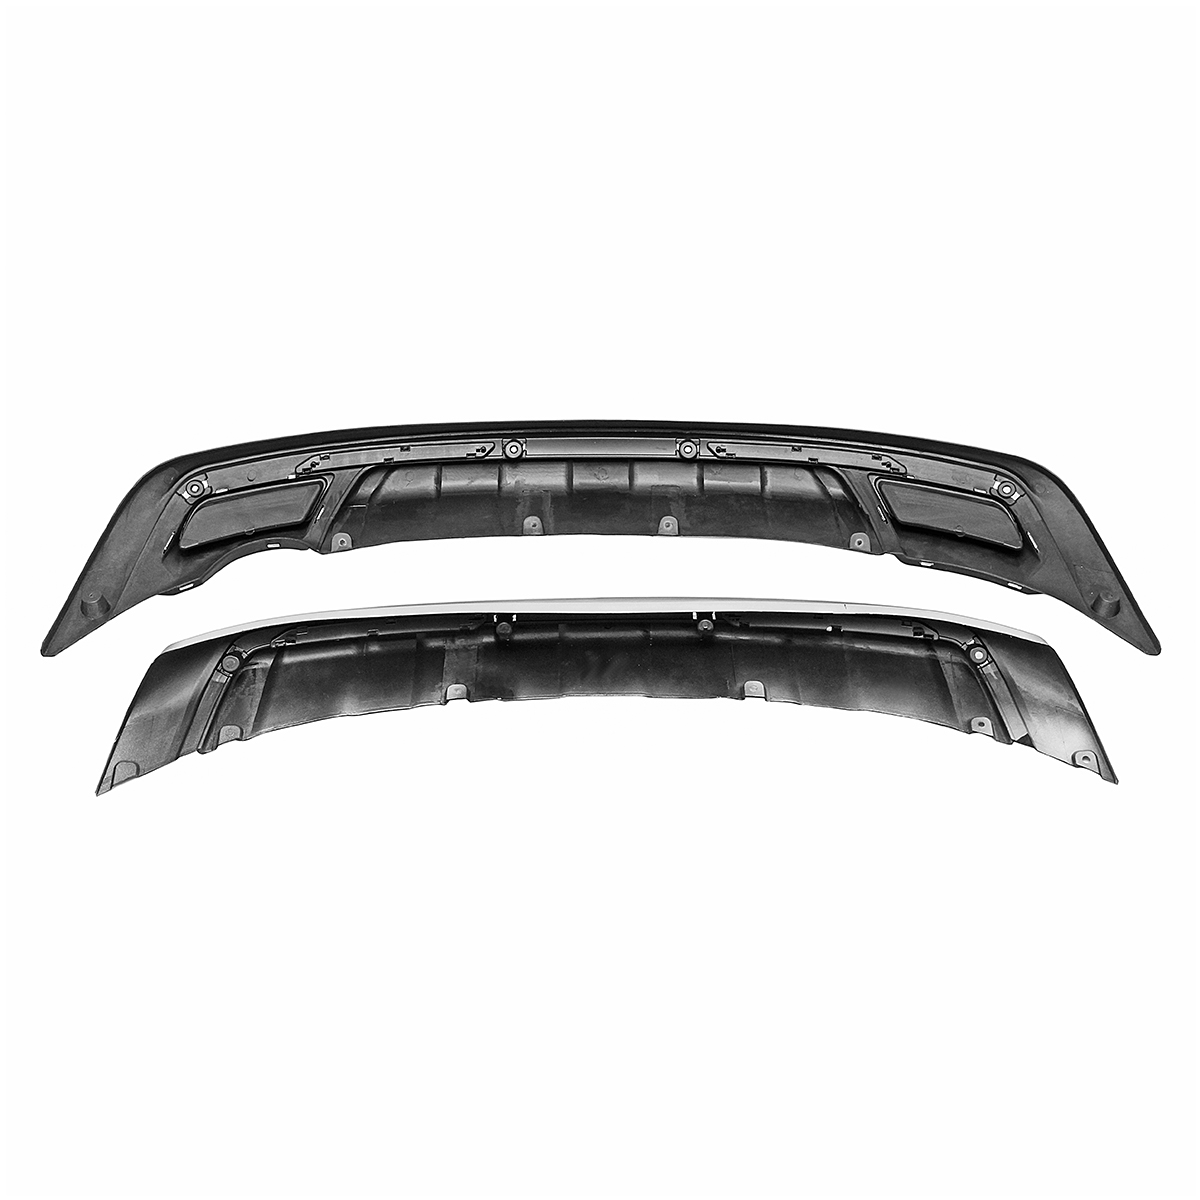 ABS Front And Rear Bumper Protector For KIA Sportage 2010-2014